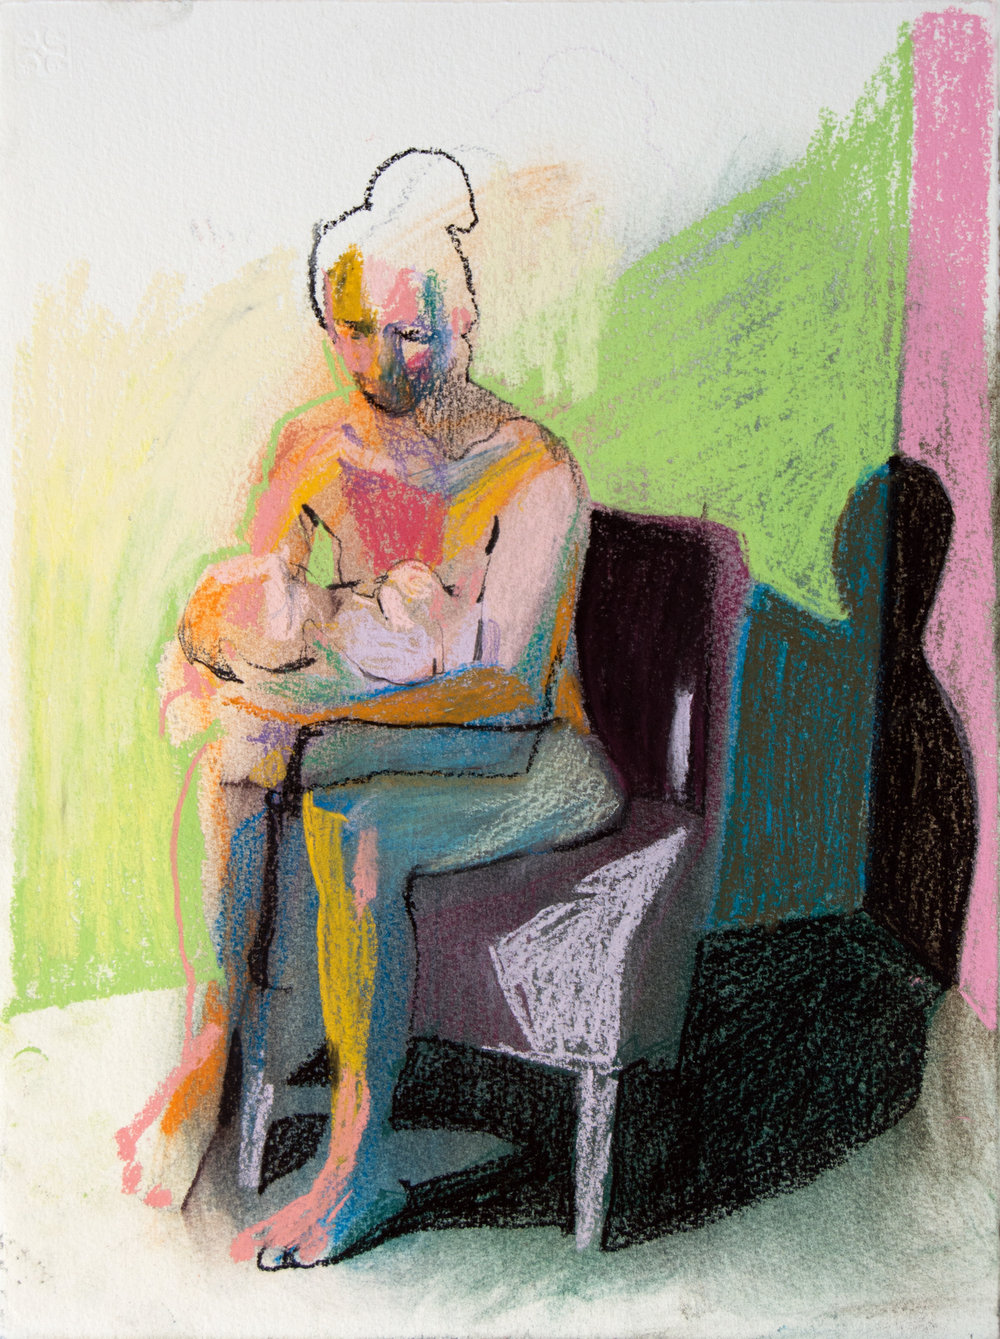 Mother, model and child on white with green wall', 2018, pastel, 38 x 28.3cm, SOLD